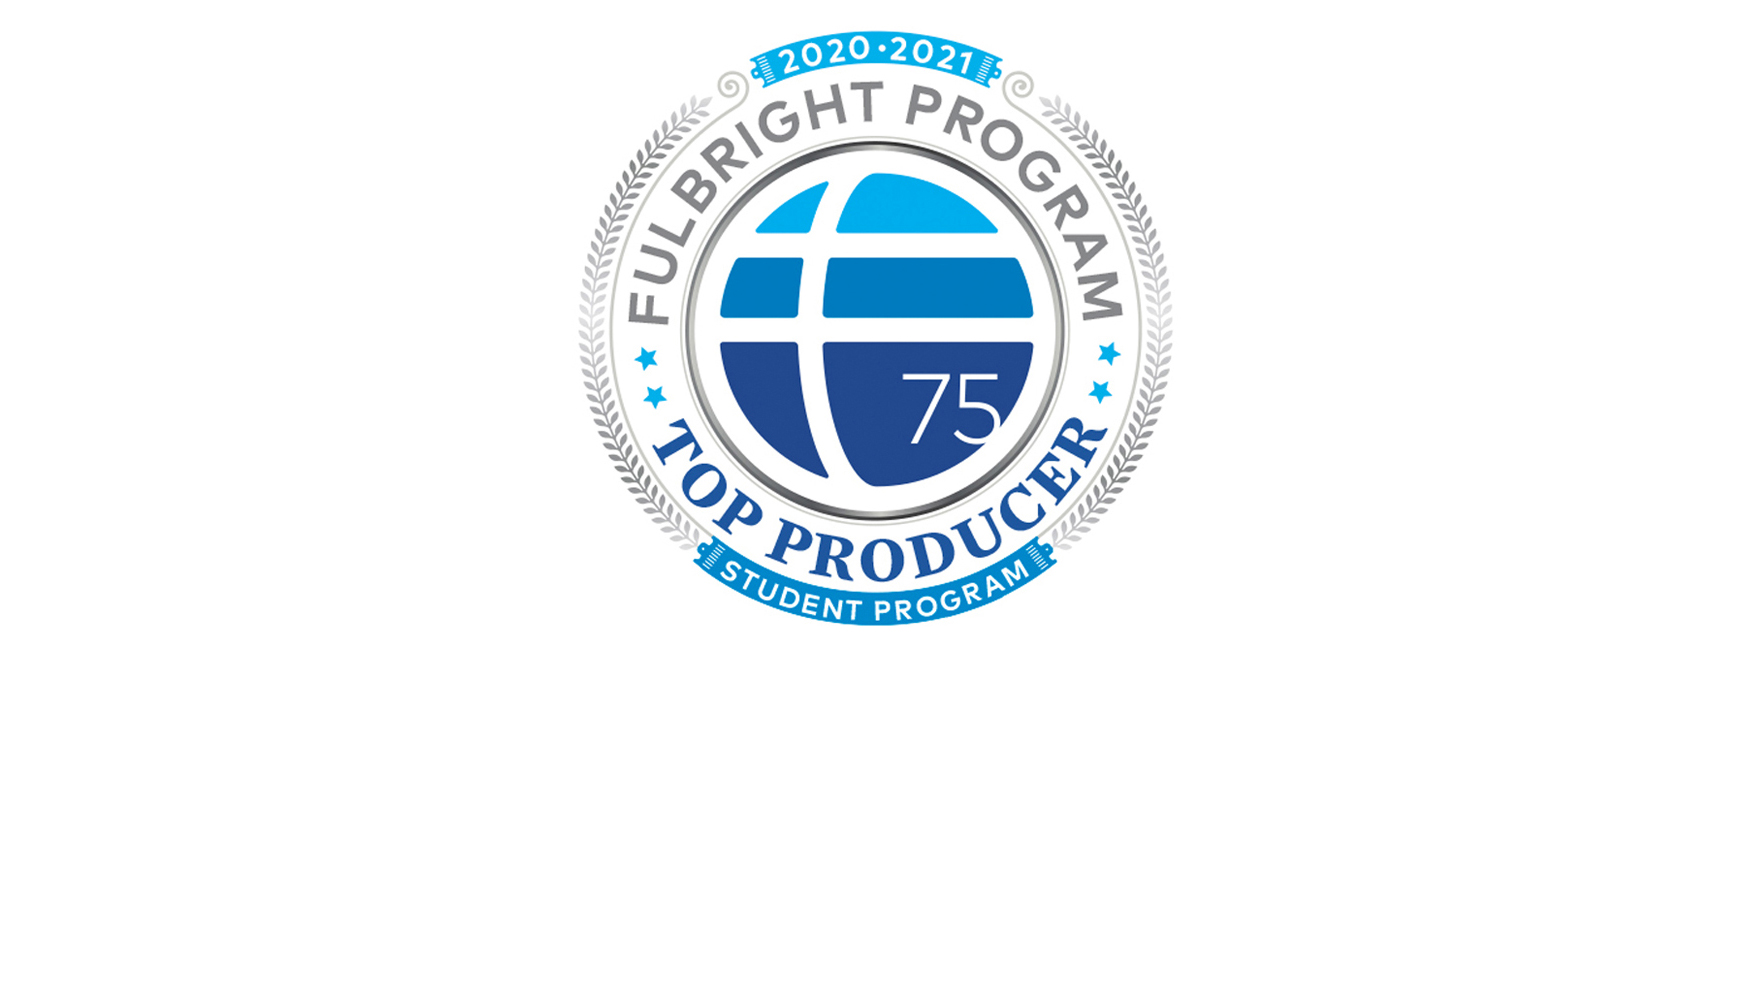 Fulbright Program's 'top producer' logo